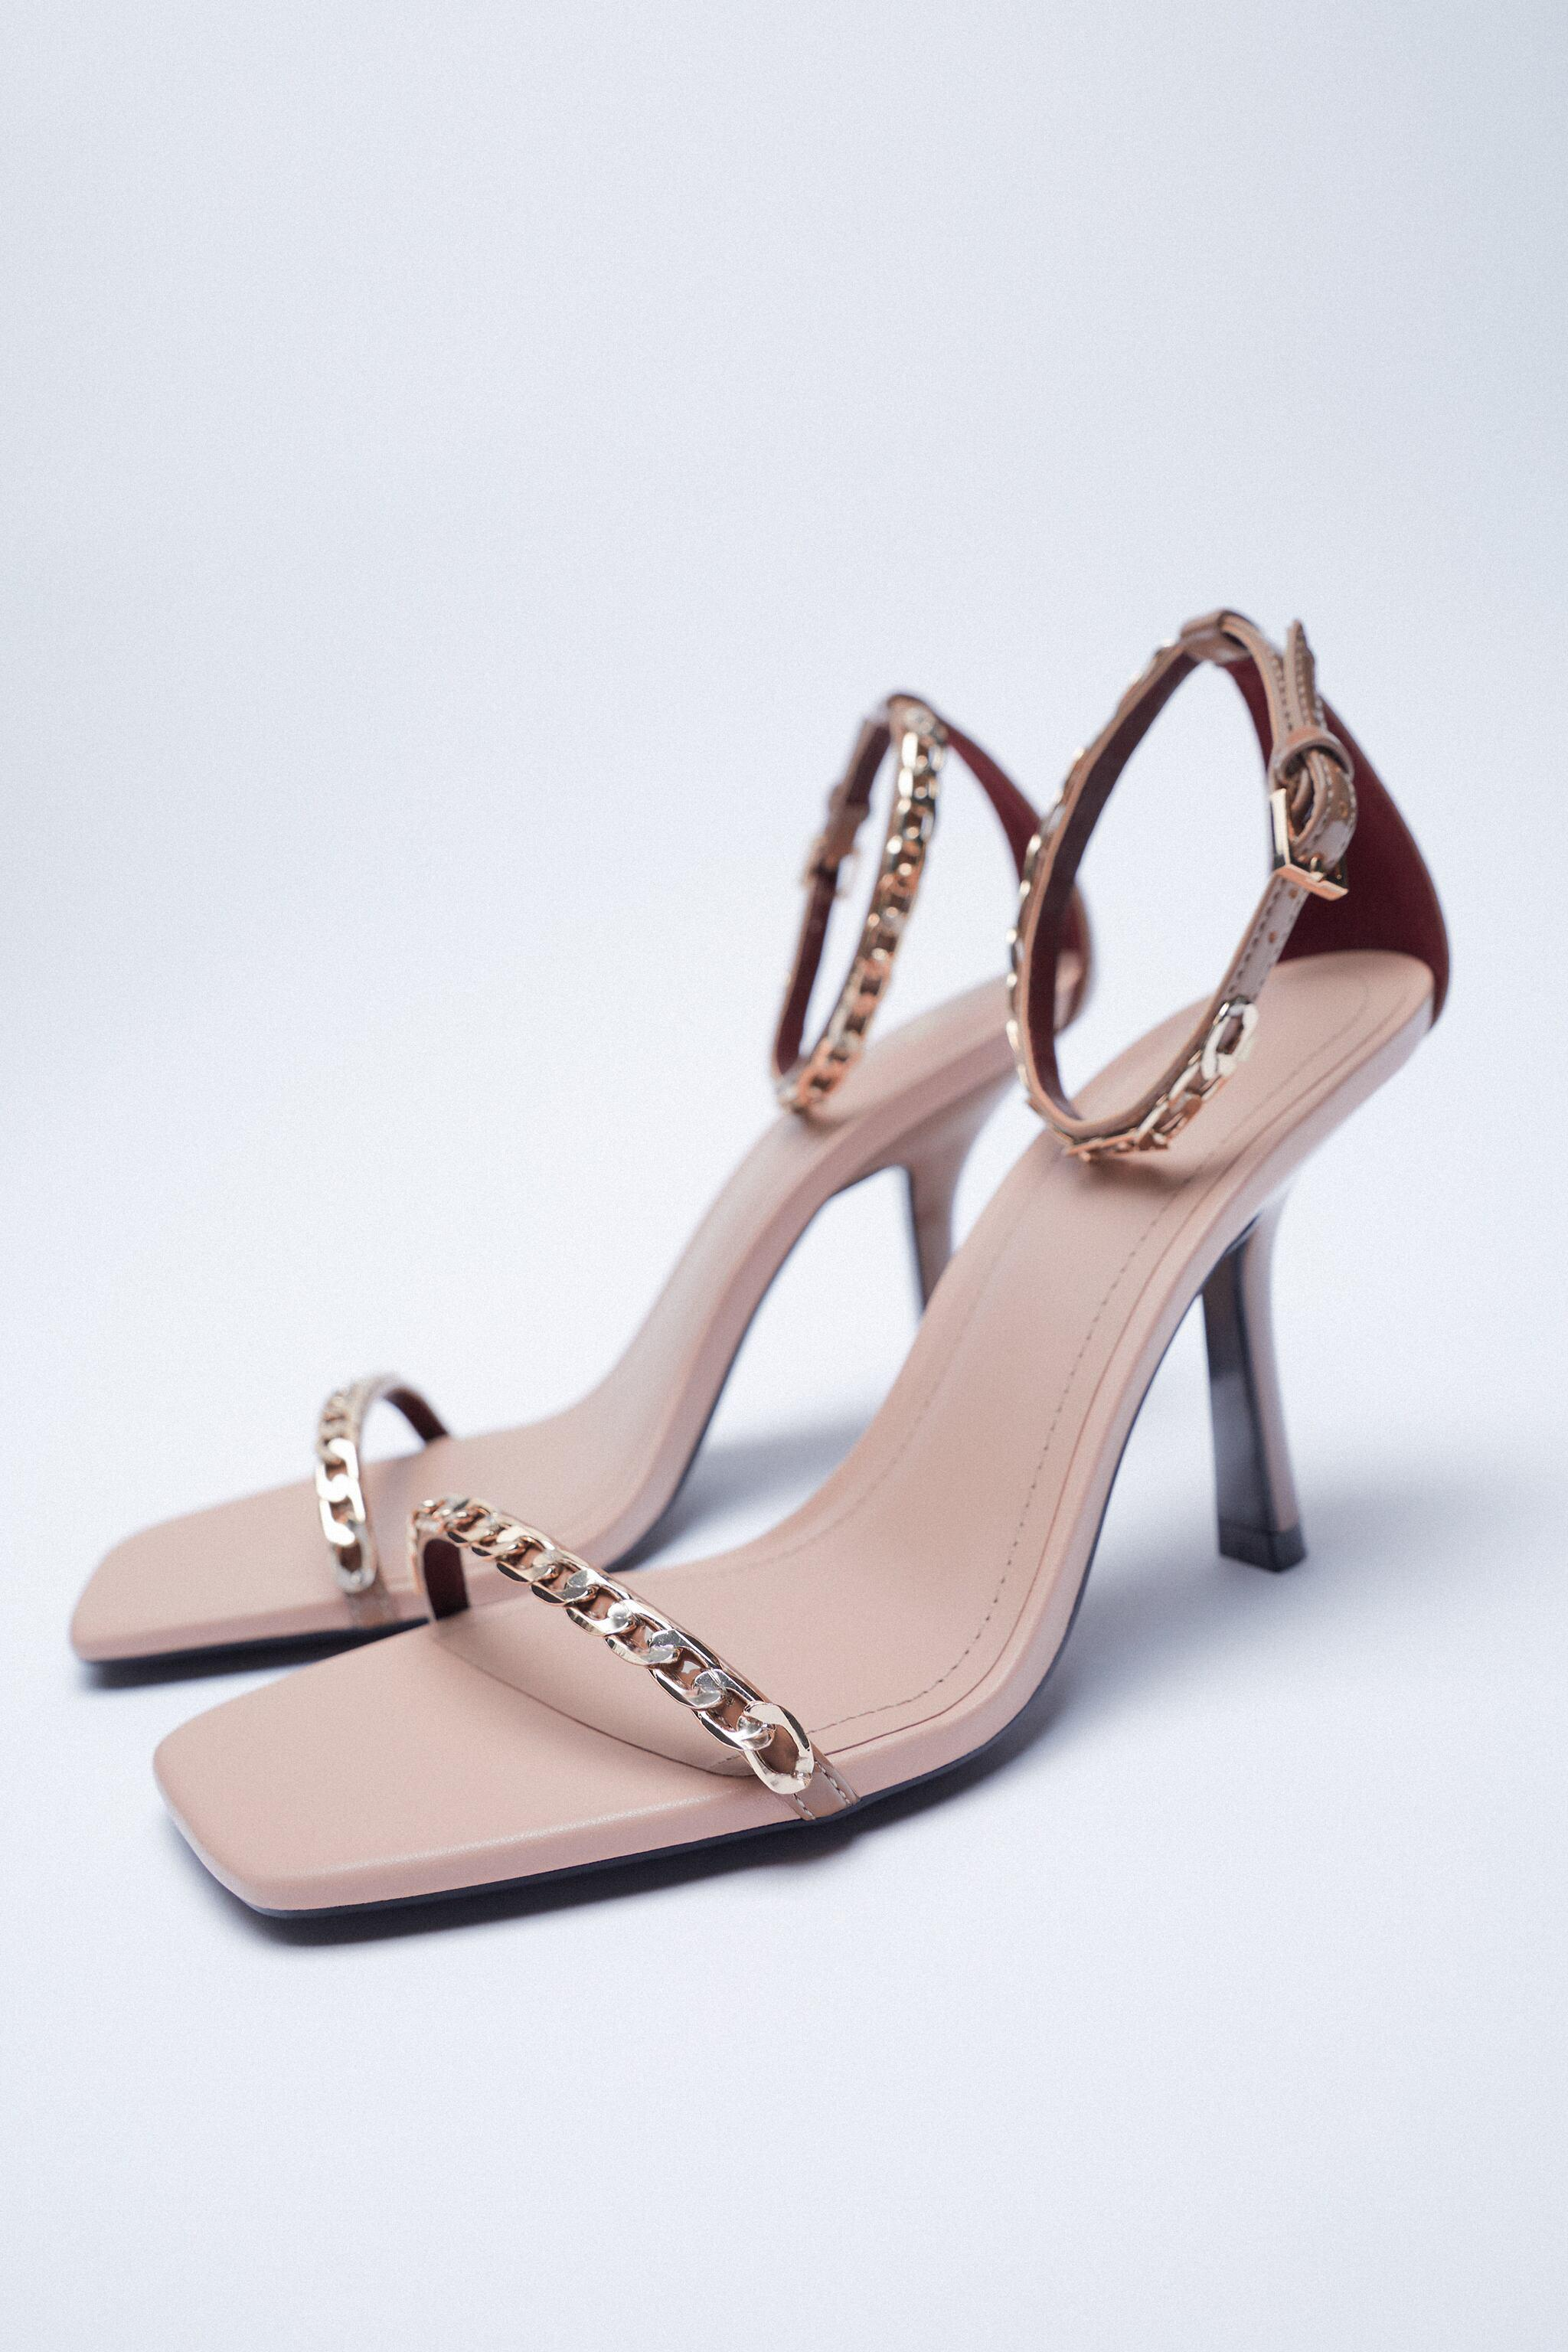 HIGH HEELED SANDALS WITH CHAIN 4